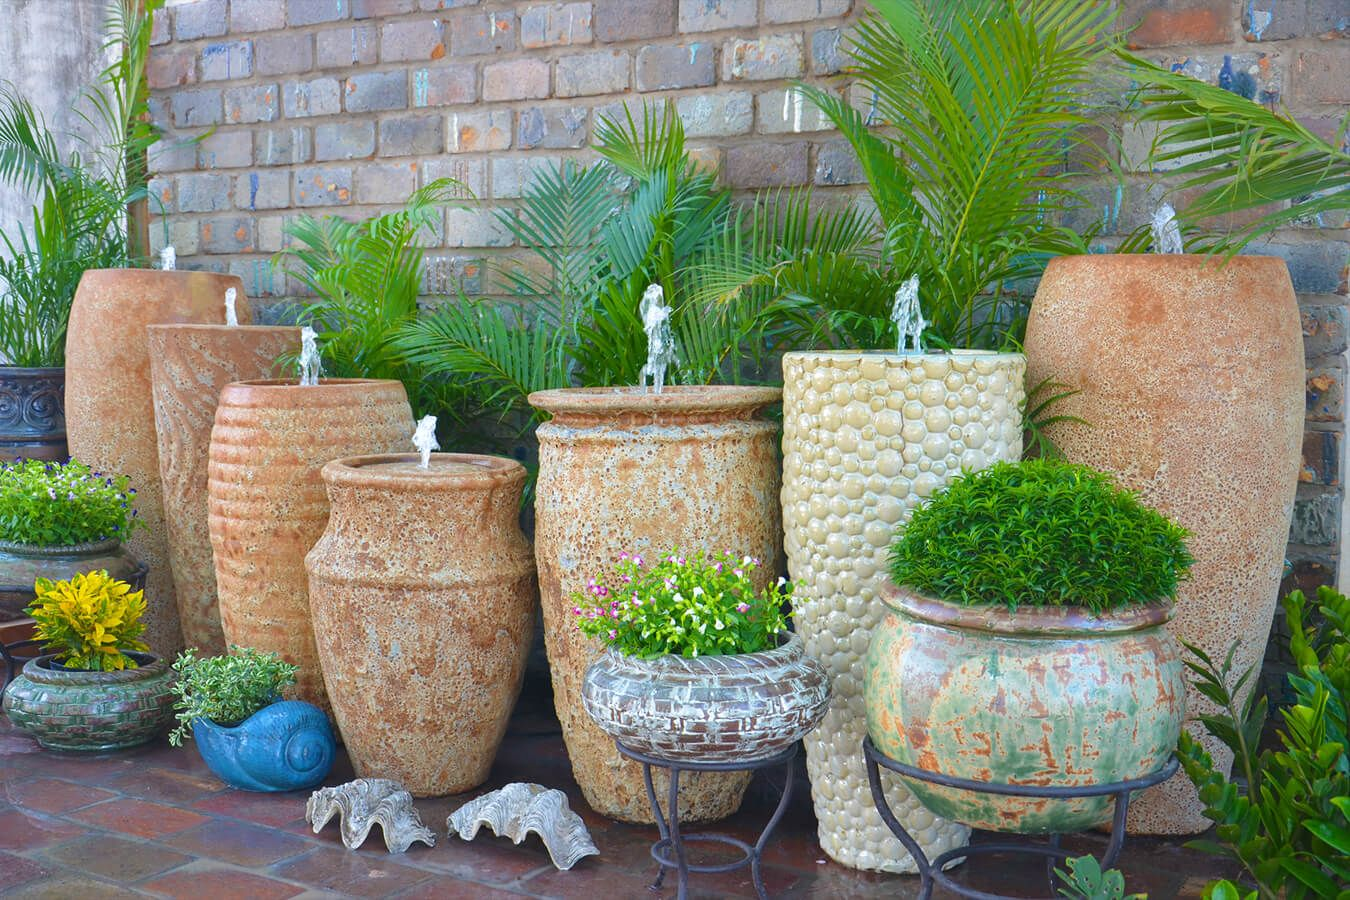 Wonderful Wholesale Vietnamese Garden Pottery, Large Pots, Outdoor Planters Vases And  Urns, Pot Fountains, Beautiful Glazed Colors. Best Factory Price And Small  Order